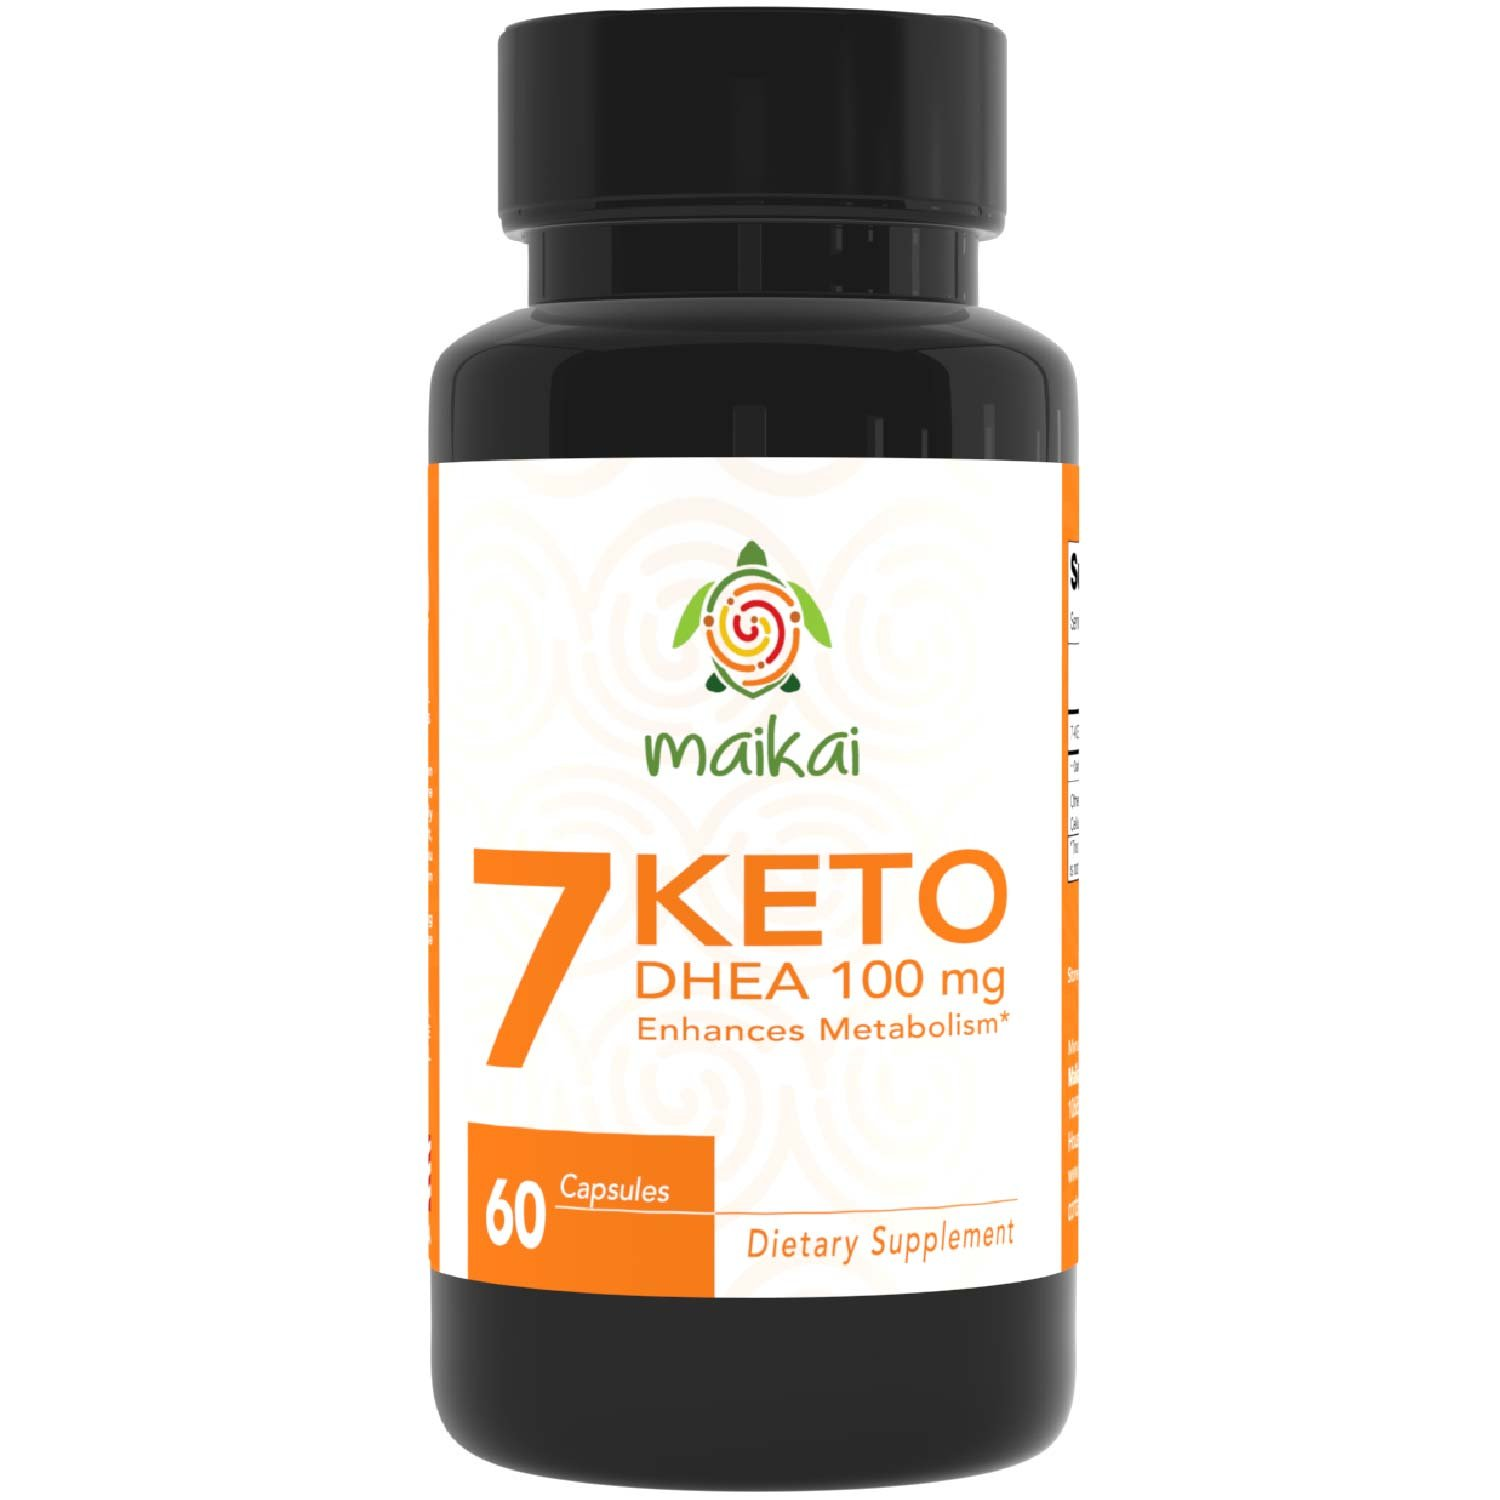 7 Keto DHEA 100mg Burn Pills - Weight Loss Supplements to Burn Fat Fast - Enhances Metabolism and Promotes Weight Loss - Ketosis Supplement for Women and Men (60) by Maikai